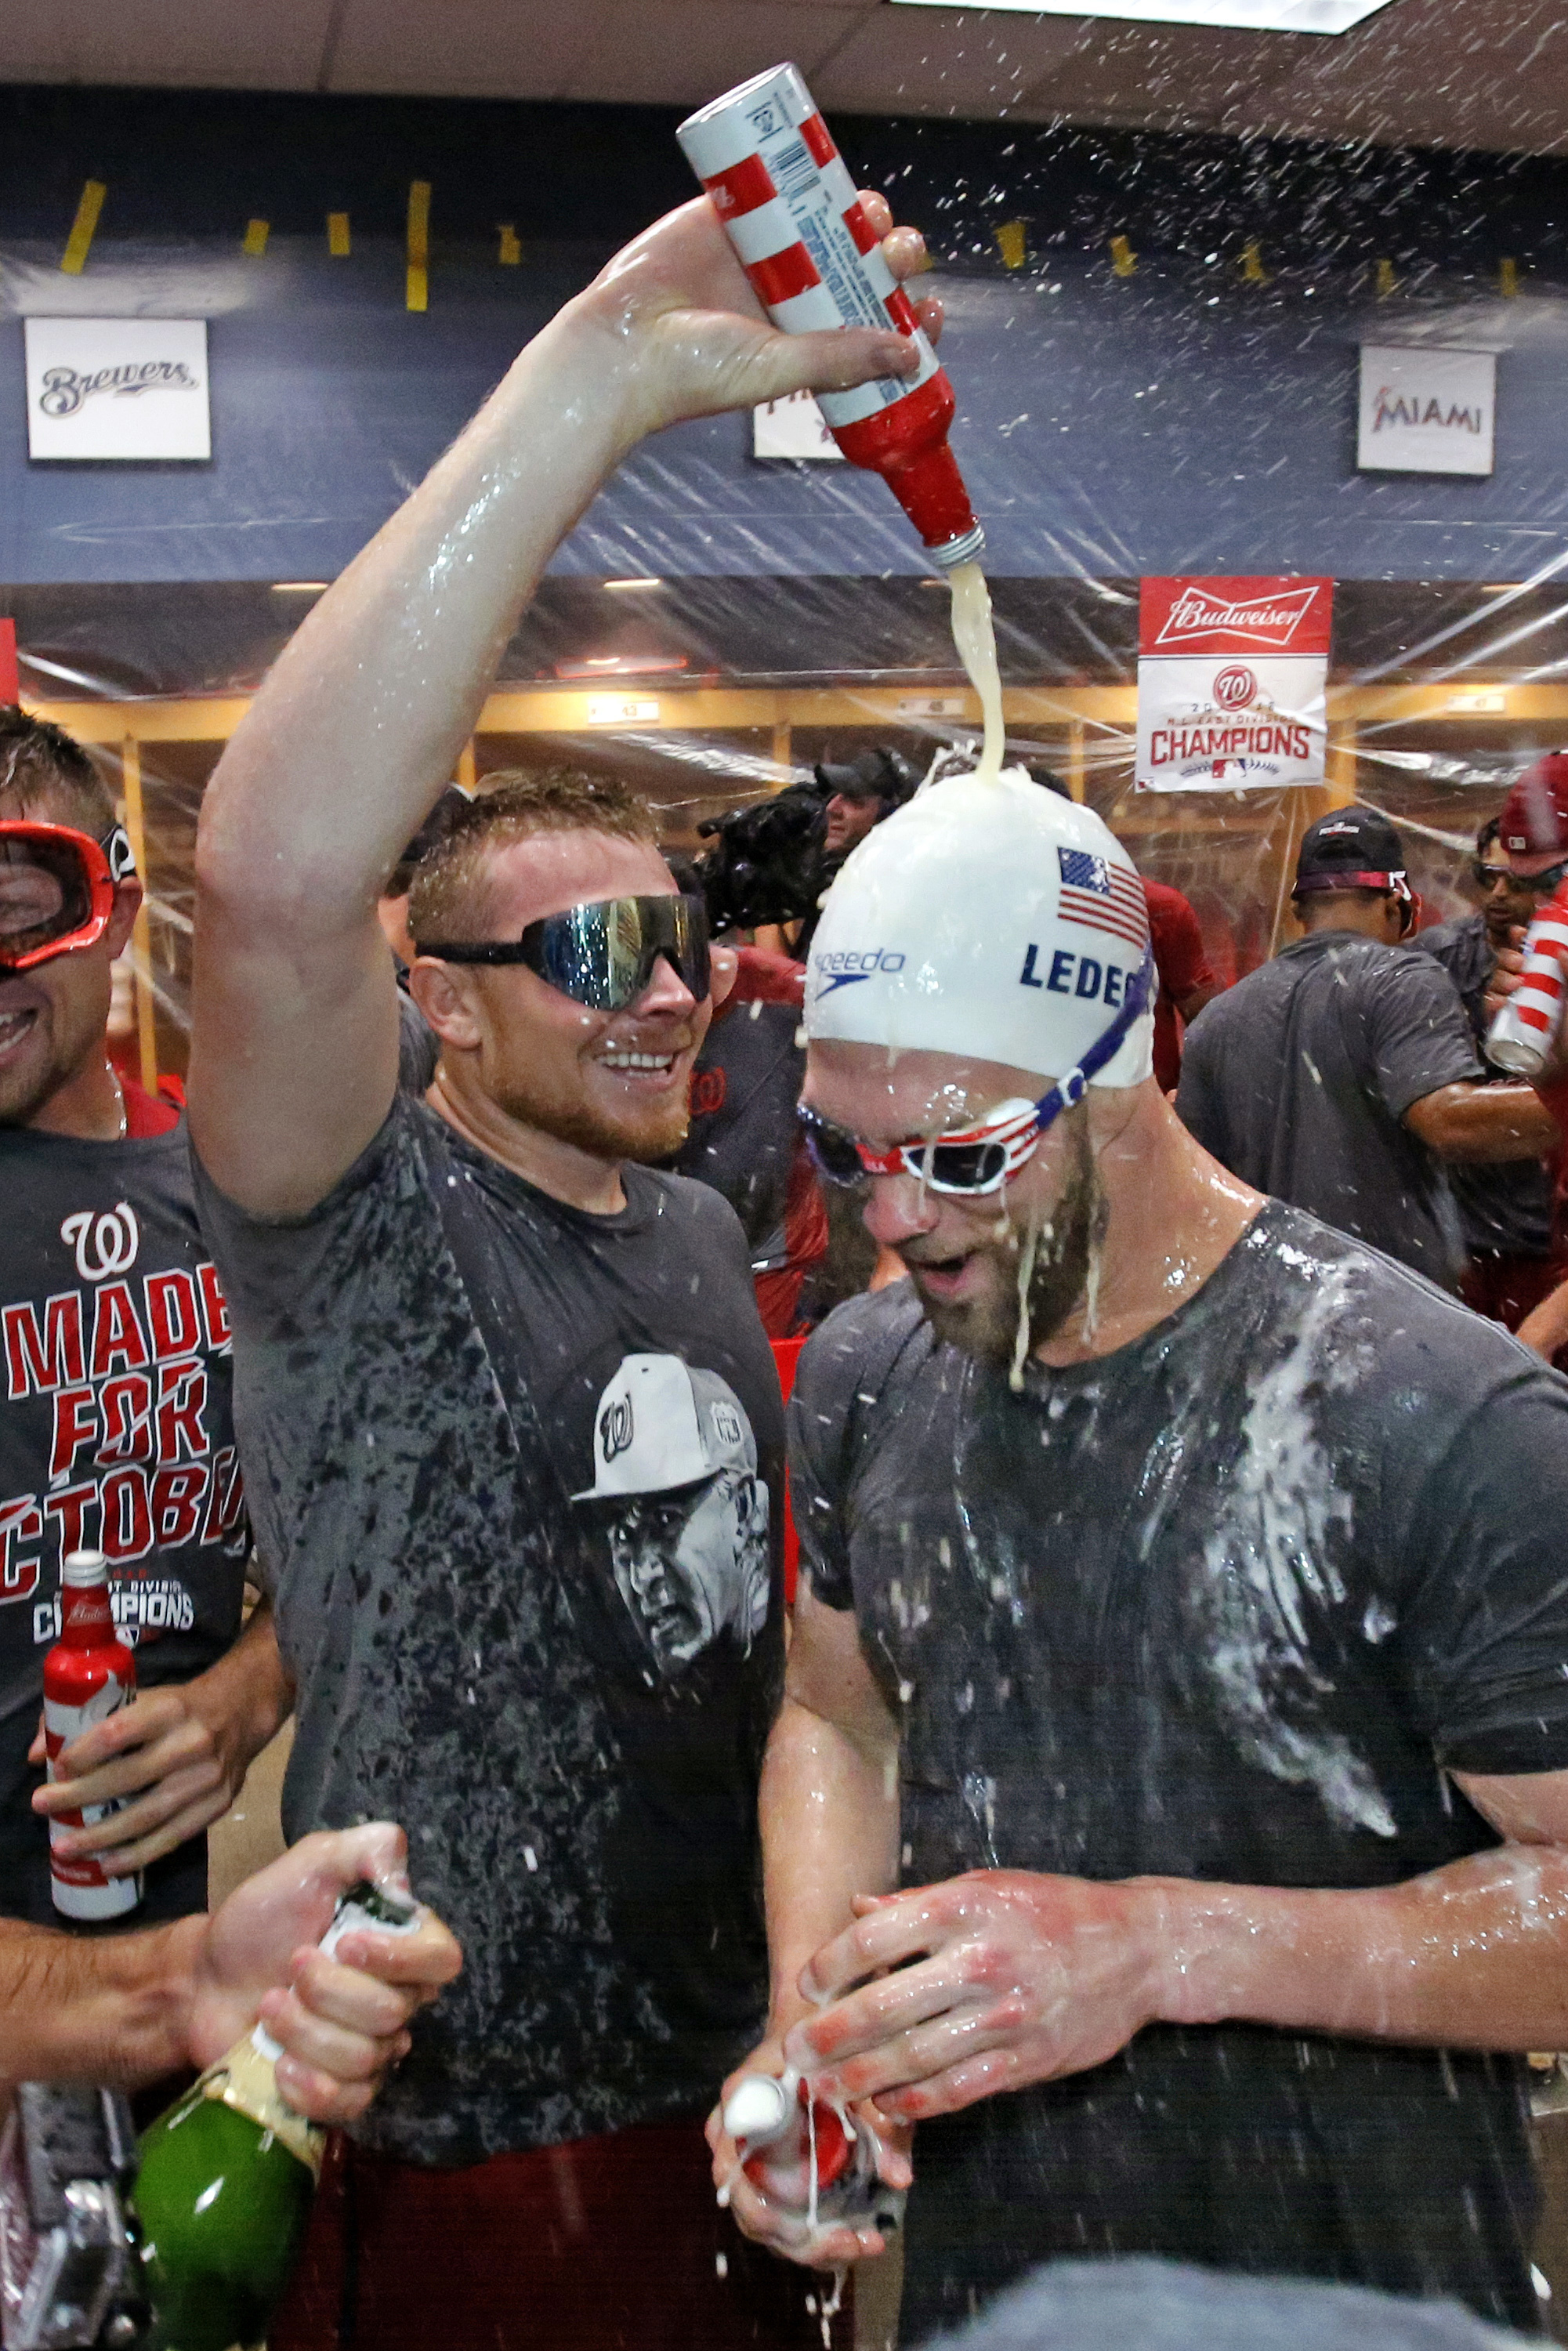 Washington Nationals' Bryce Harper, right, and Mark Melancon, left, celebrate after clinching the National League East following a 6-1 win over the Pittsburgh Pirates in a baseball game in Pittsburgh, Saturday, Sept. 24, 2016. (AP Photo/Gene J. Puskar)